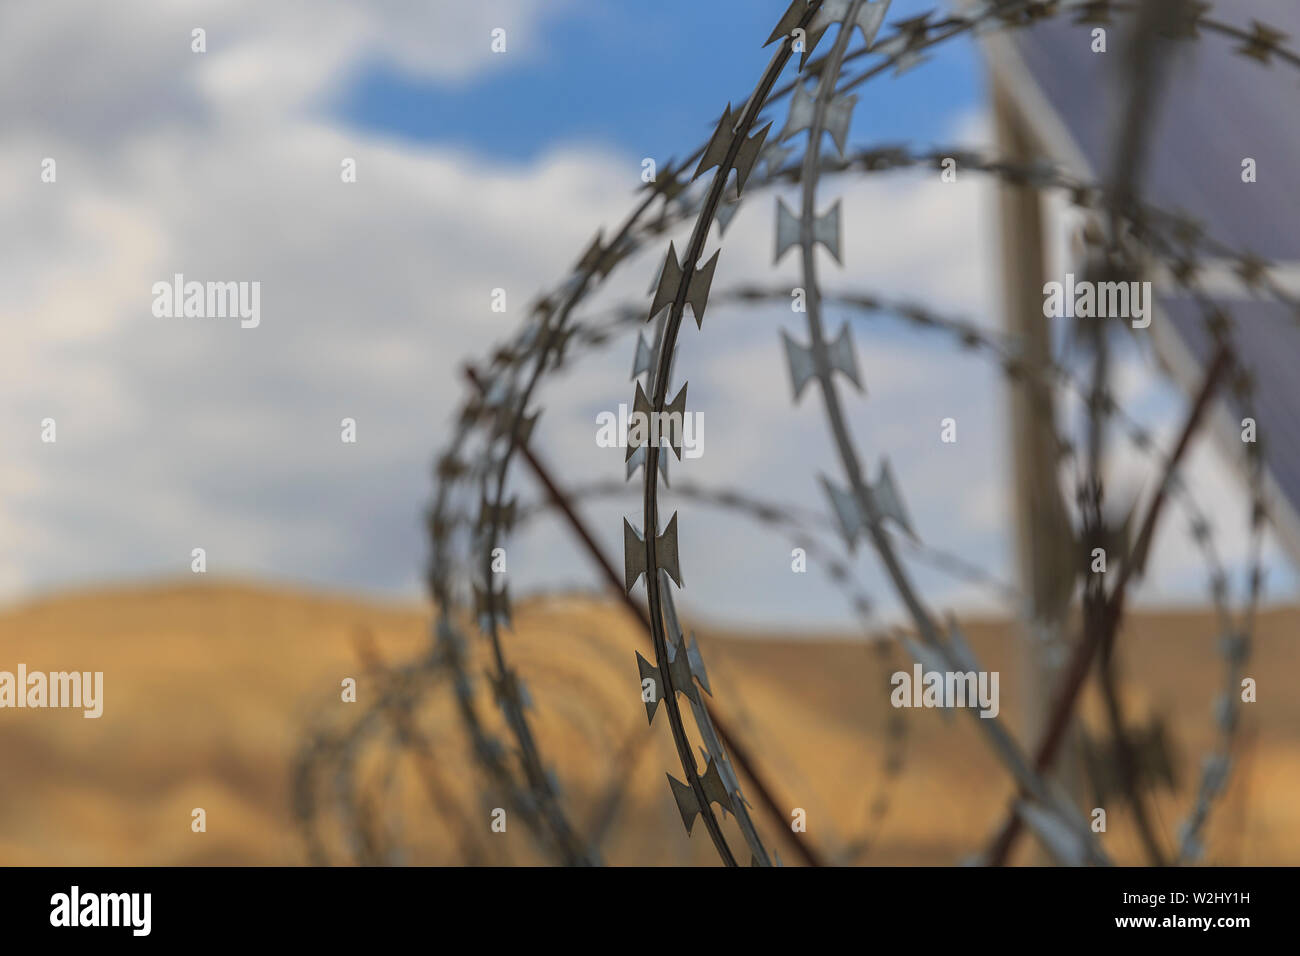 Barbed wire drawn in circles against a background of mountains - Stock Image